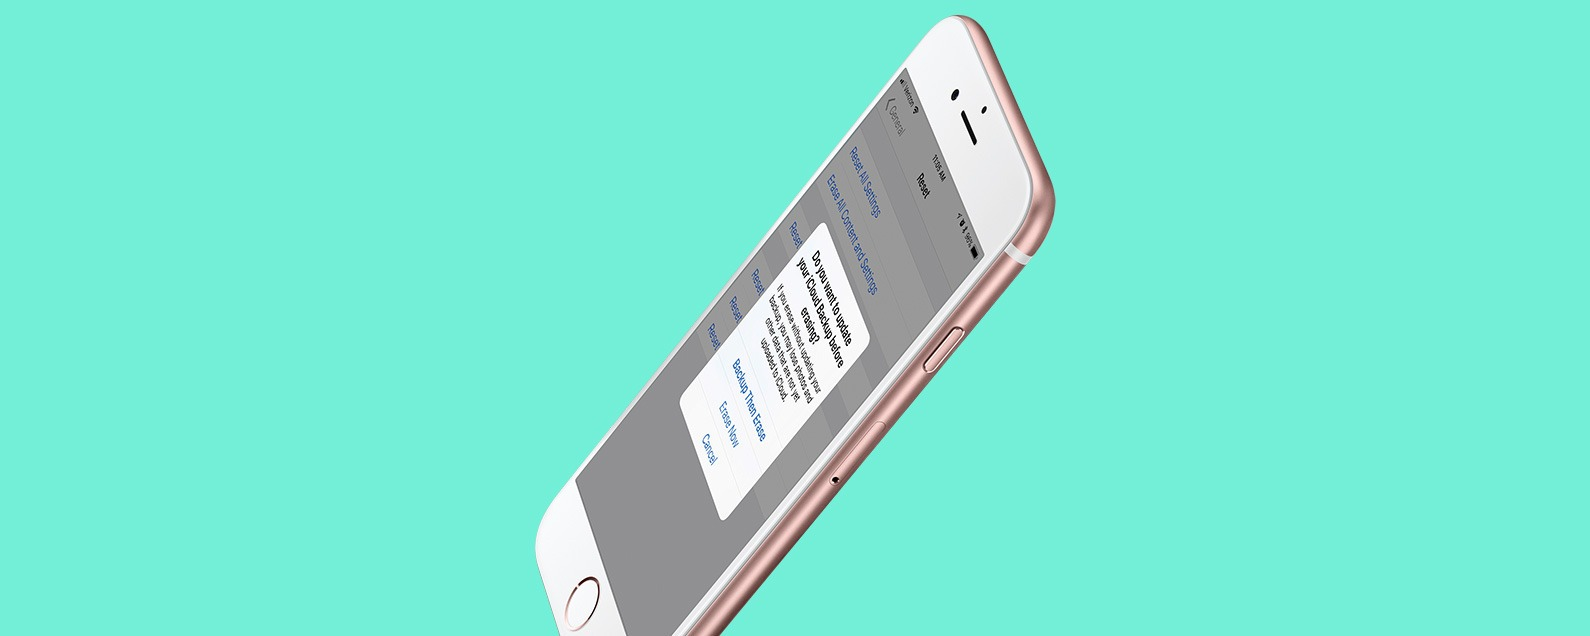 How to retrieve deleted text messages on iphone 7 for free